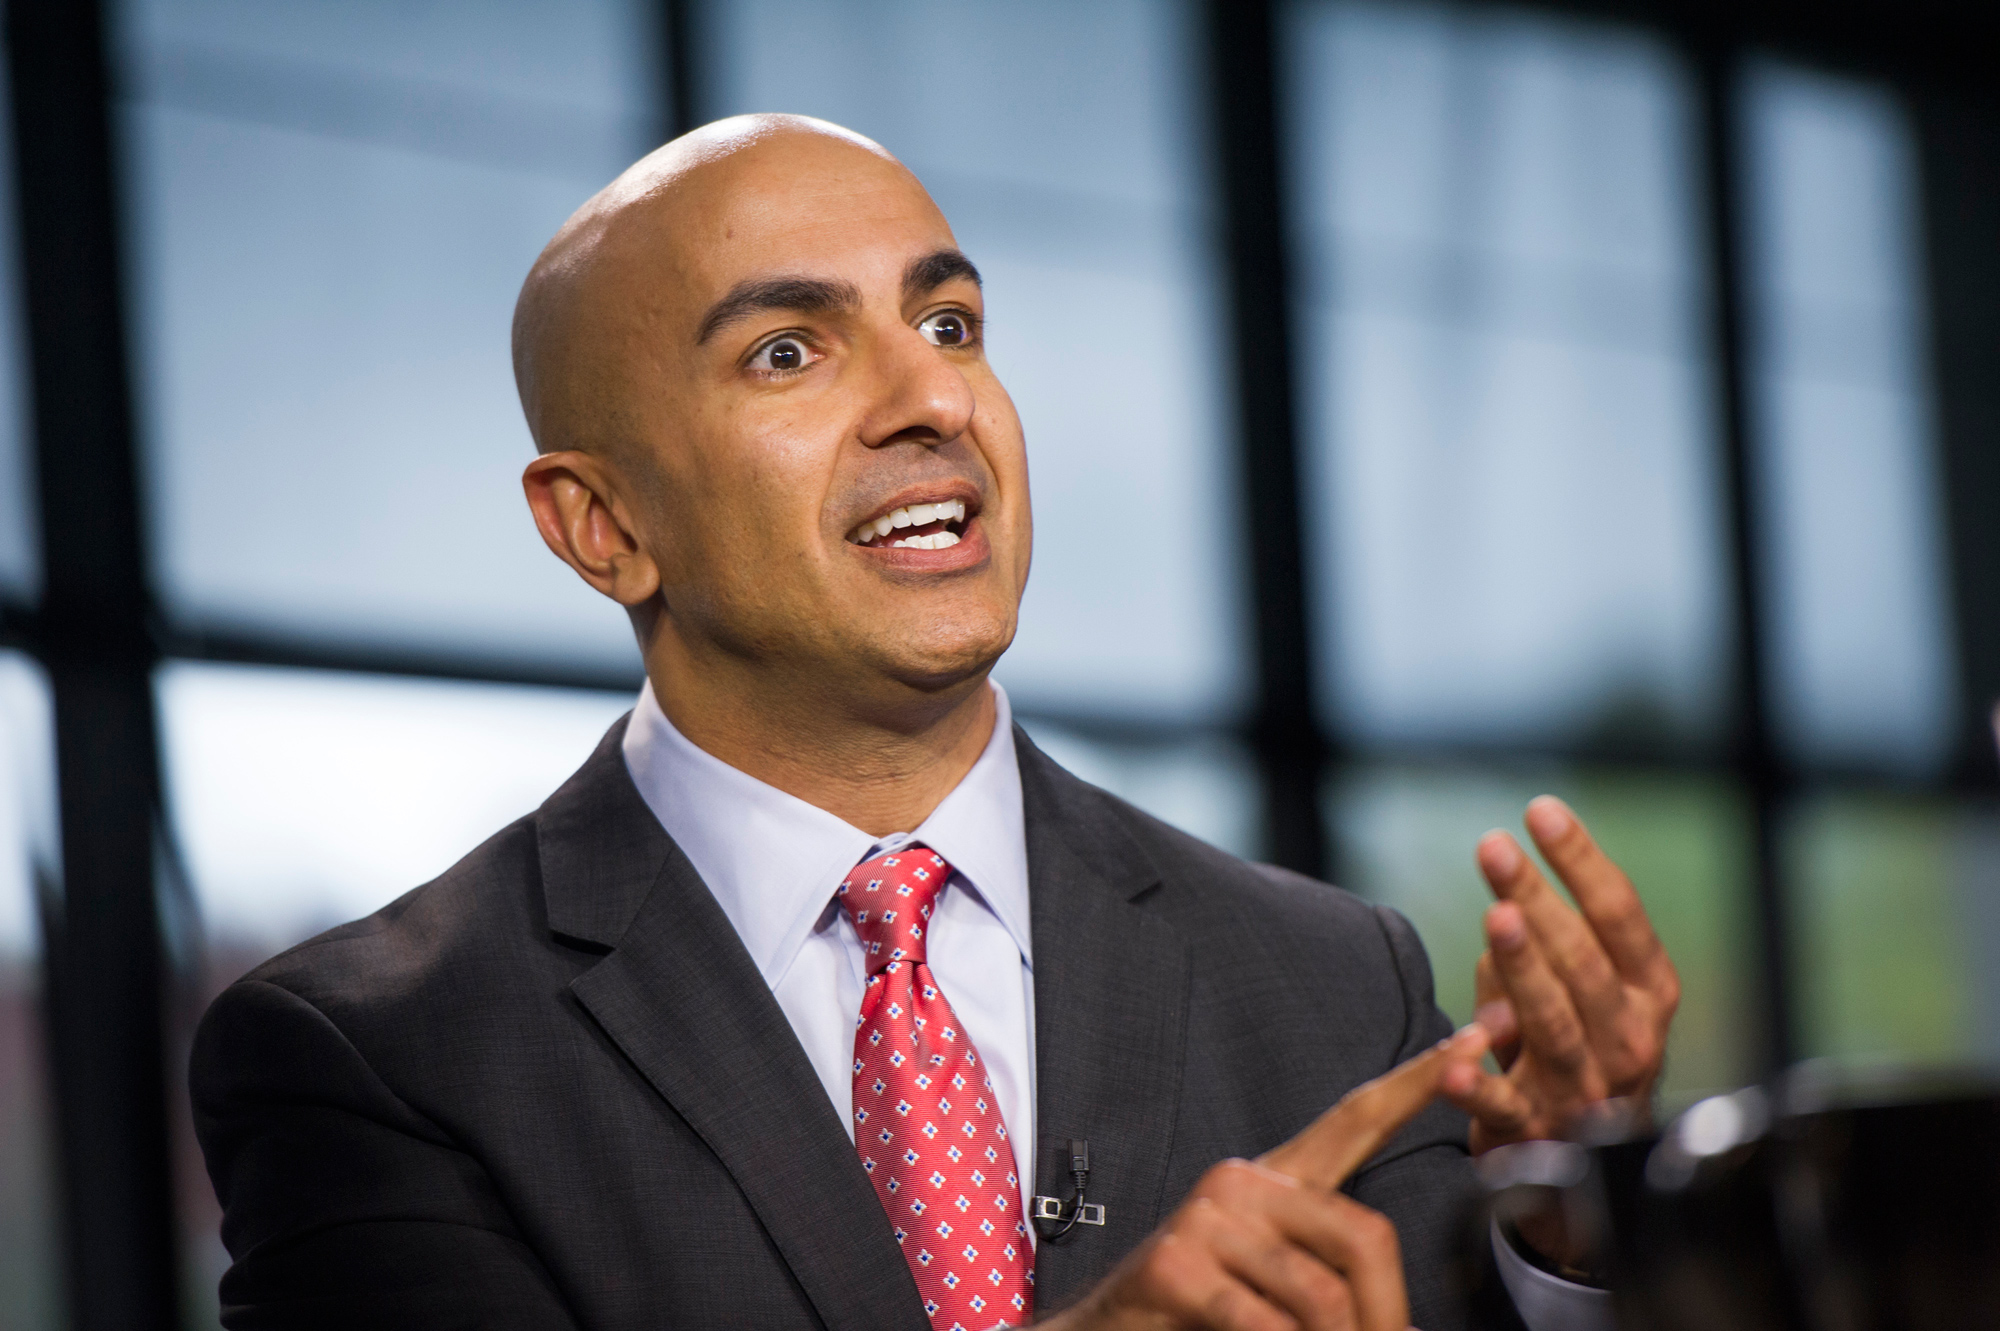 Neel Kashkari, the president of Federal Reserve Bank of Minneapolis.